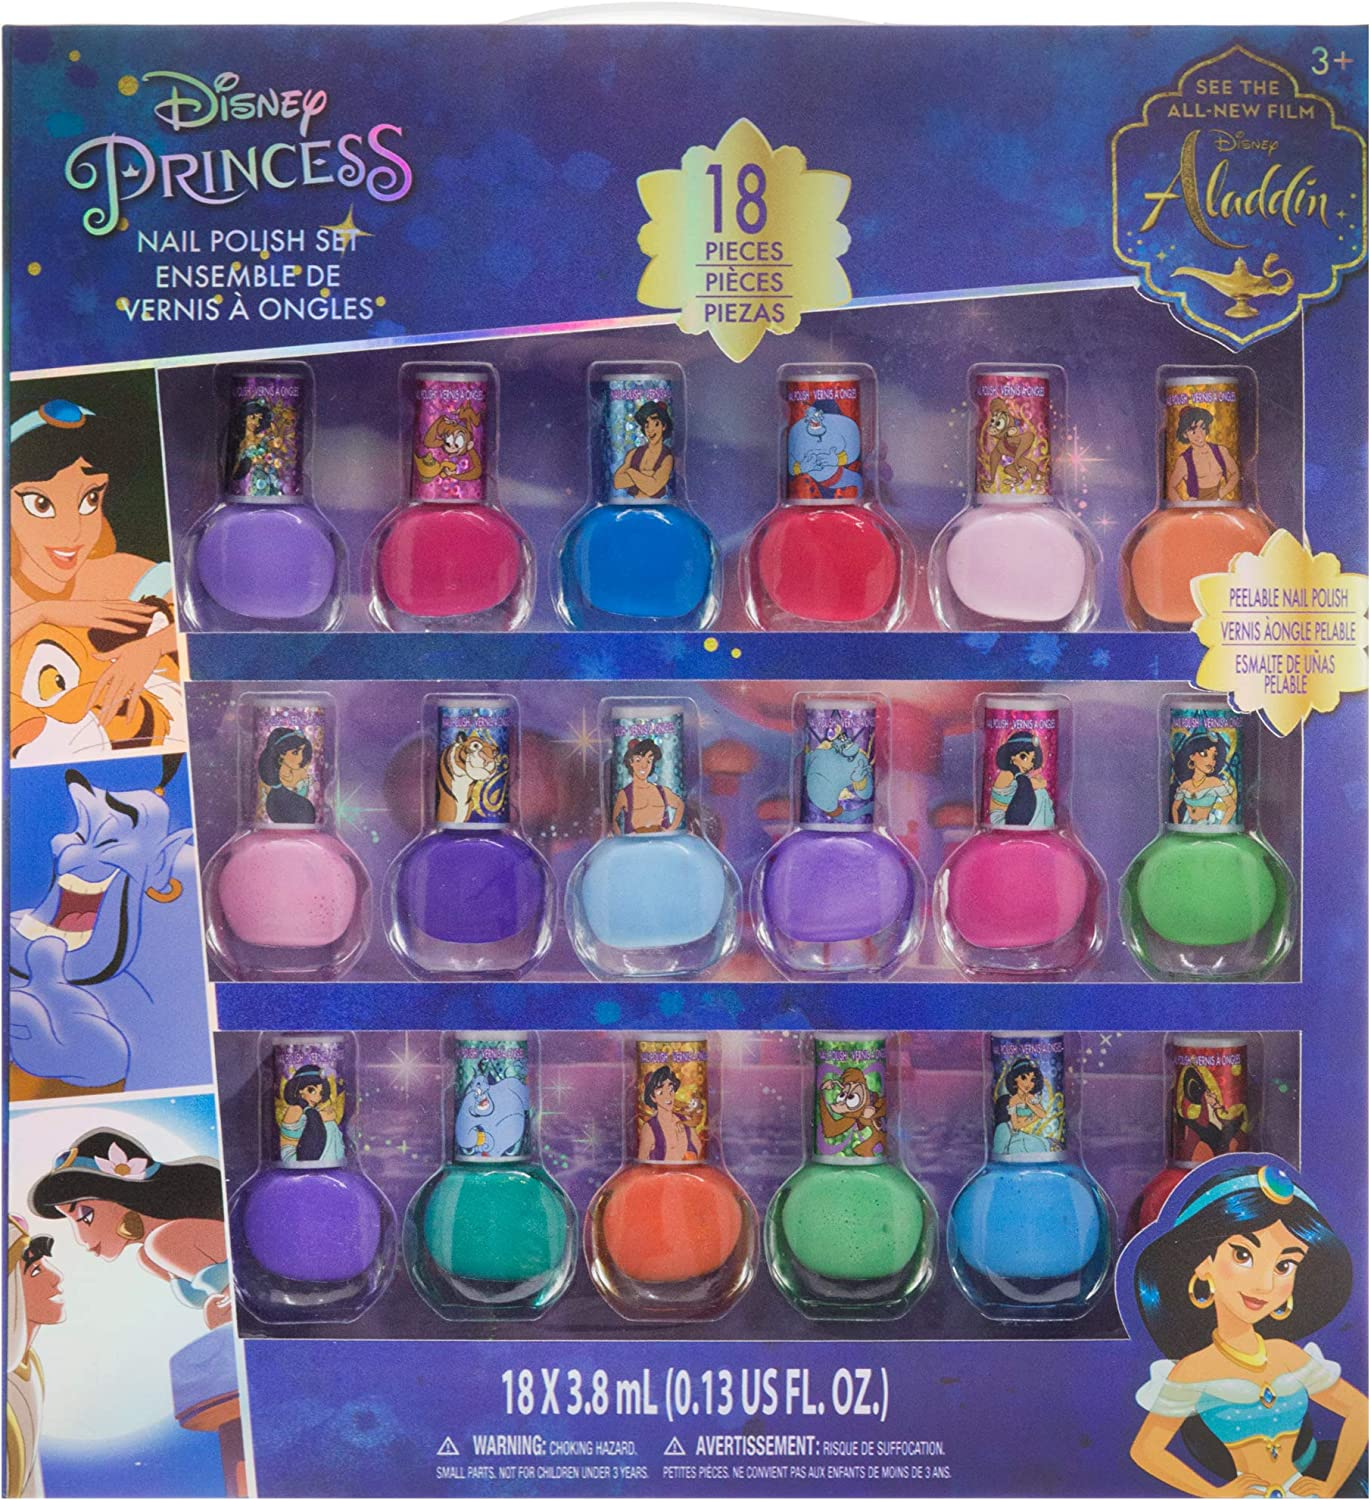 Townley Girl Disney Princess Jasmine Non-Toxic Peel-Off Nail Polish Set for Girls, Glittery and Opaque Colors, Ages 3+ (18 Pack)